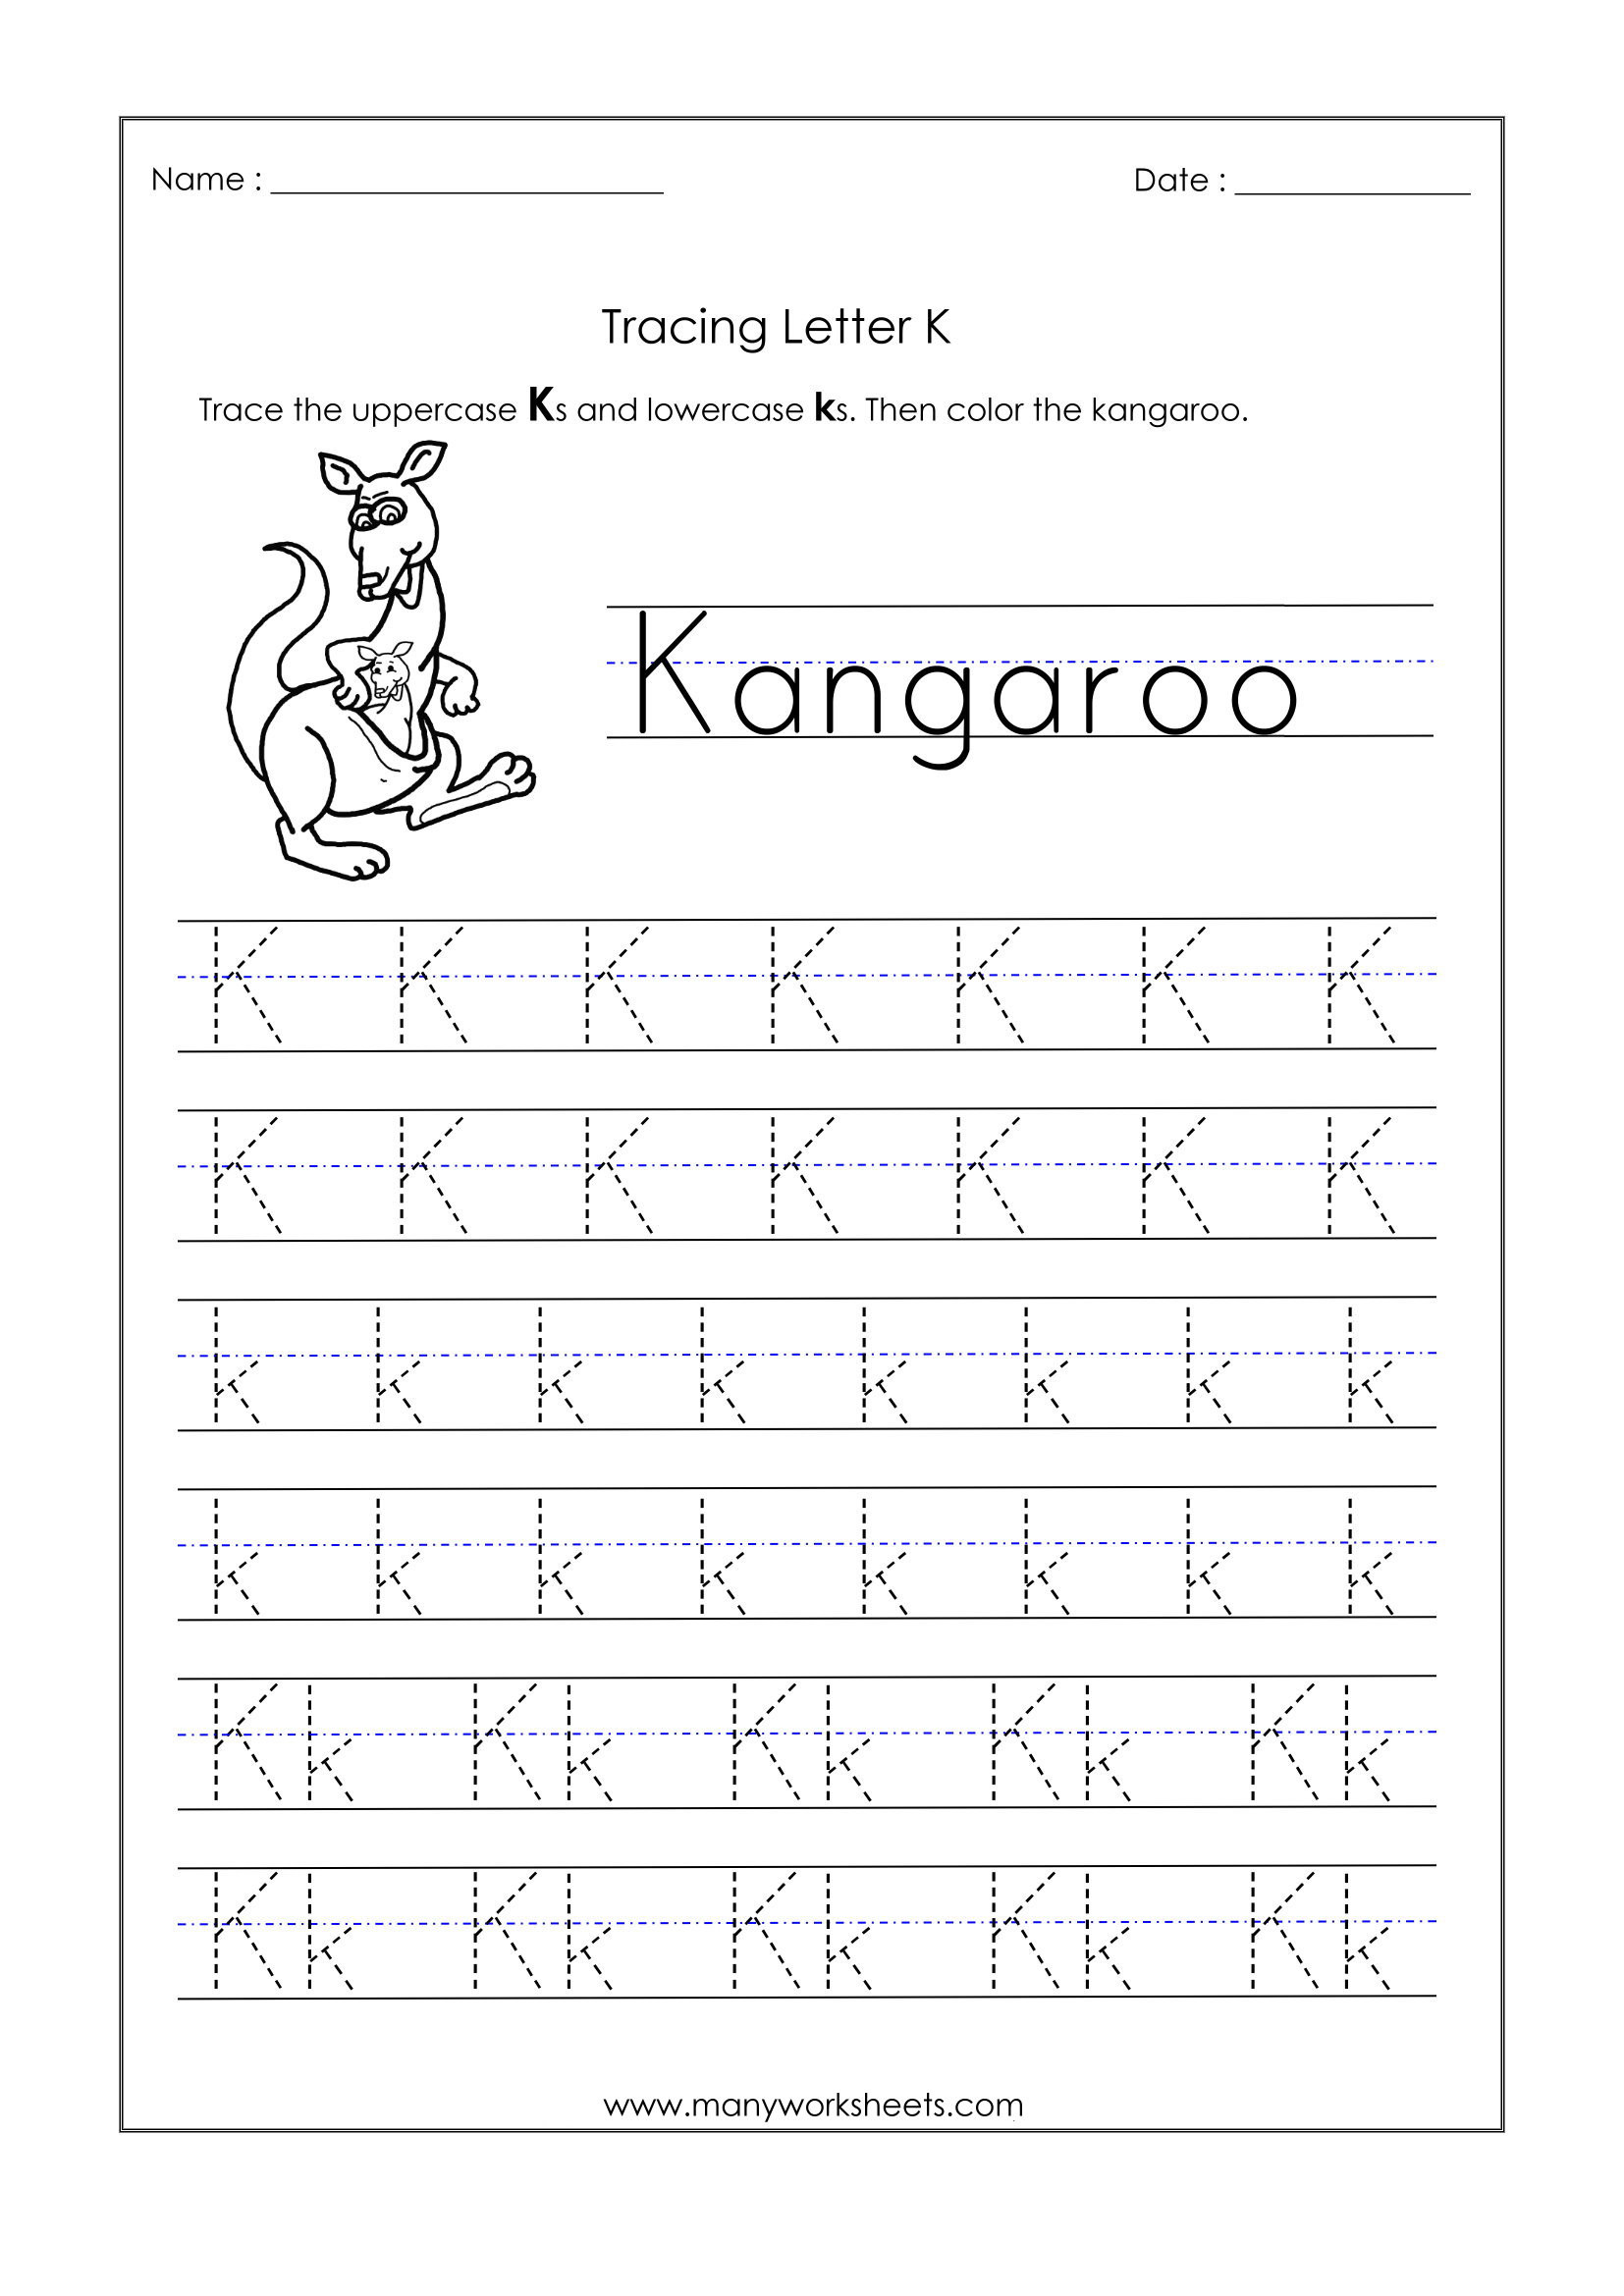 Letter K Tracing Worksheets Preschool Math Worksheet Marvelous Letter Tracing Worksheets Number